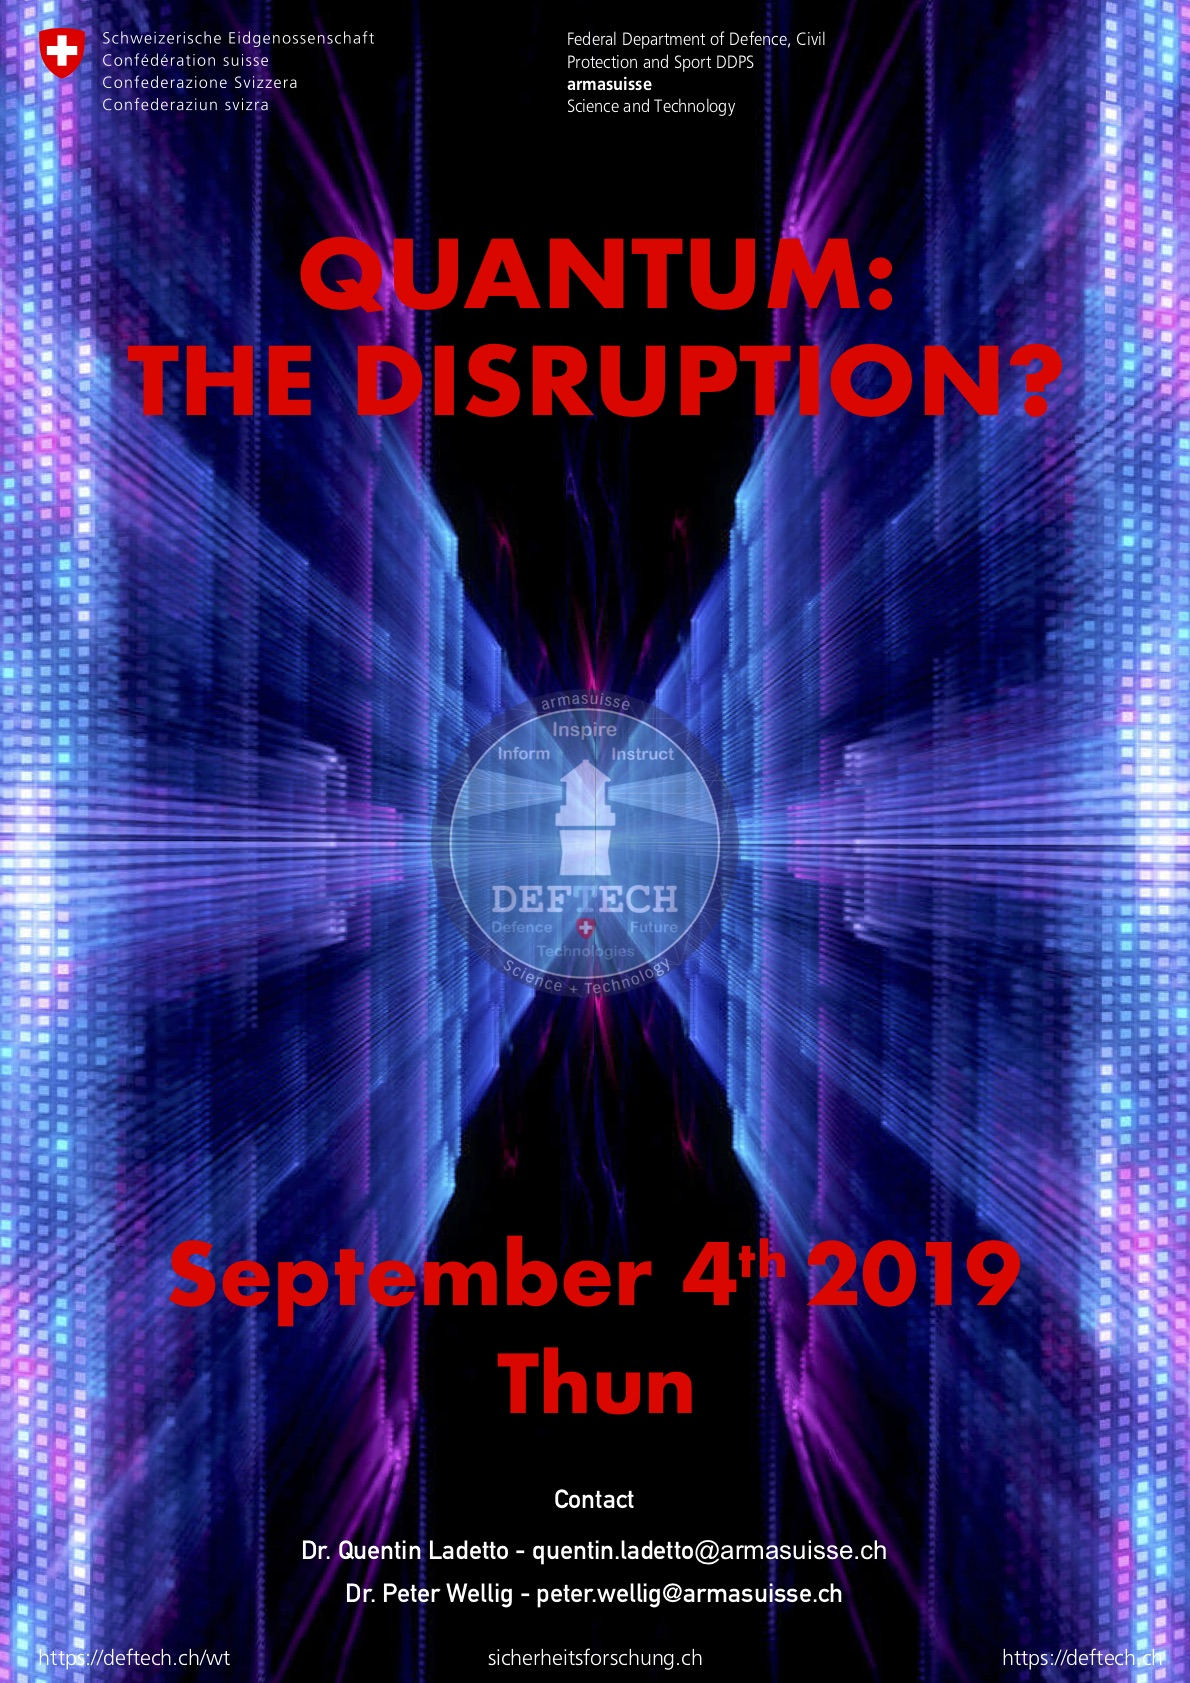 DEFTECH-Quantum-The-Disruption-September-4-2019